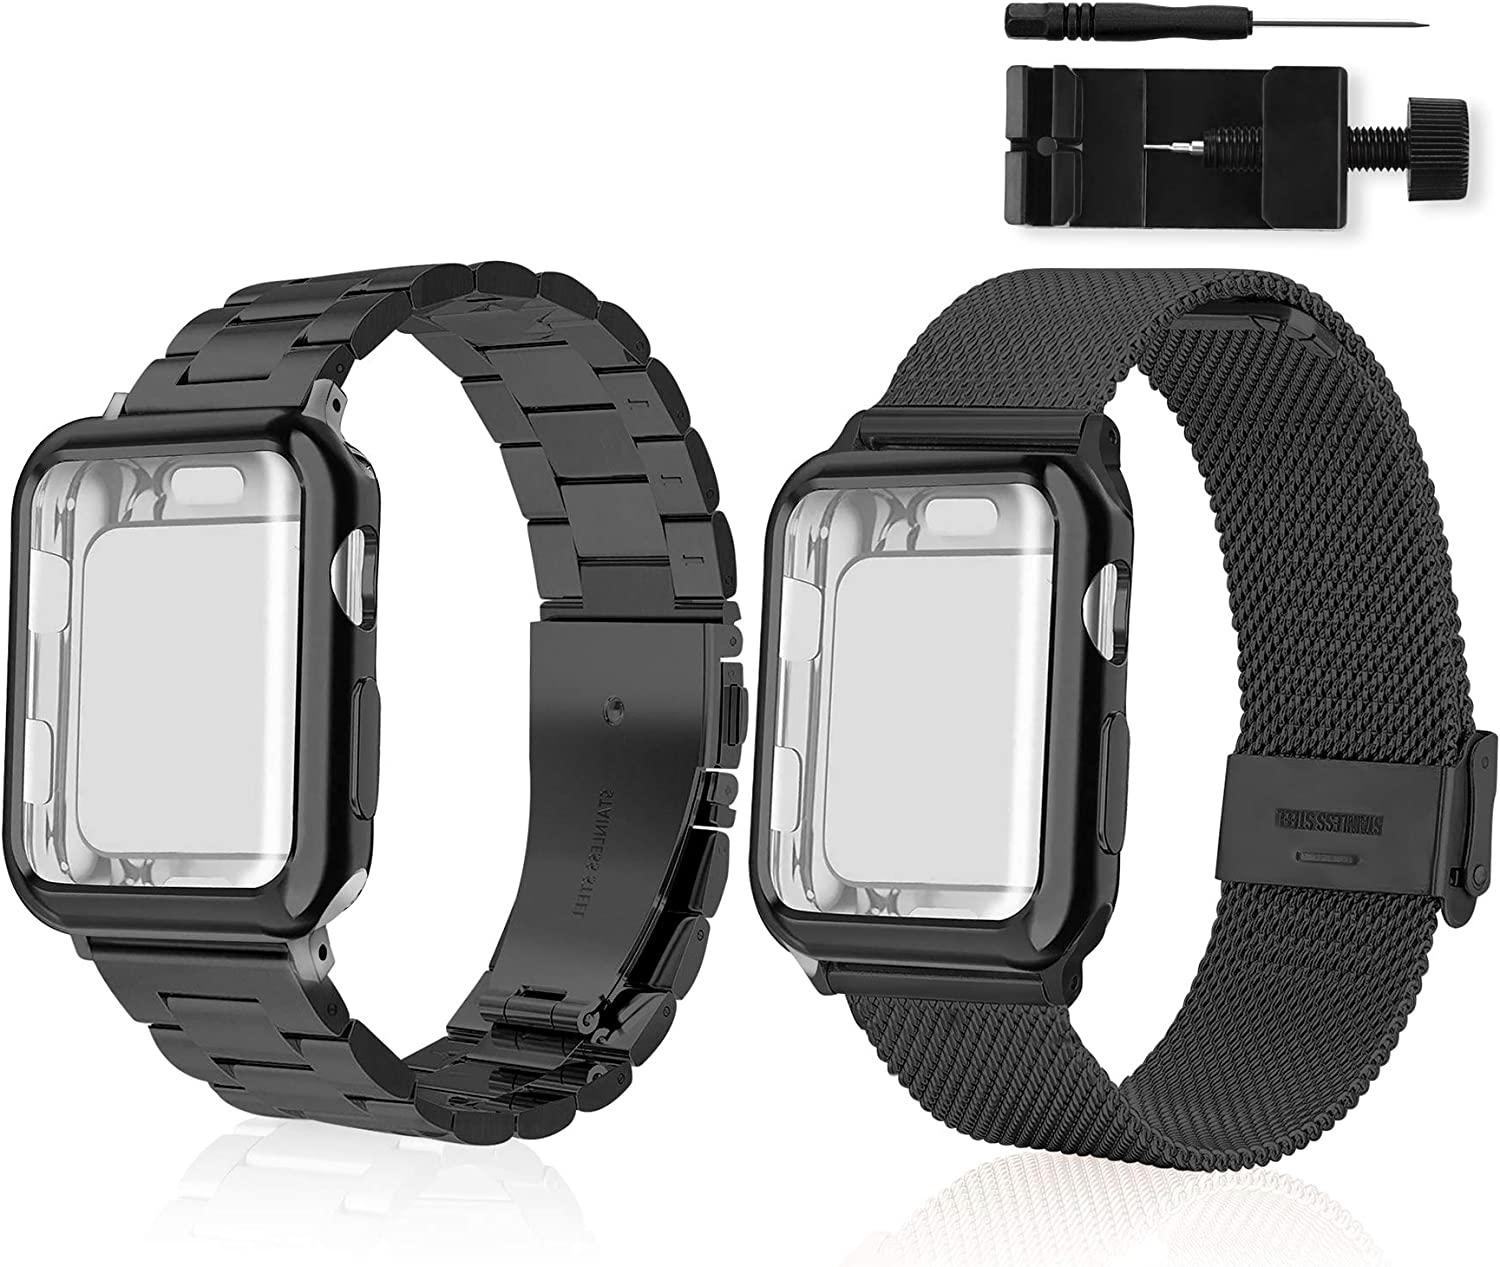 SPORUS Apple Watch Band [2 Pack], Metal Iwatch Band with Screen Protector Case for 42mm 44mm 38mm 40mm , Apple Watch Replacement Band for Iwatch Series 5/4/3/2/1 Black 42mm